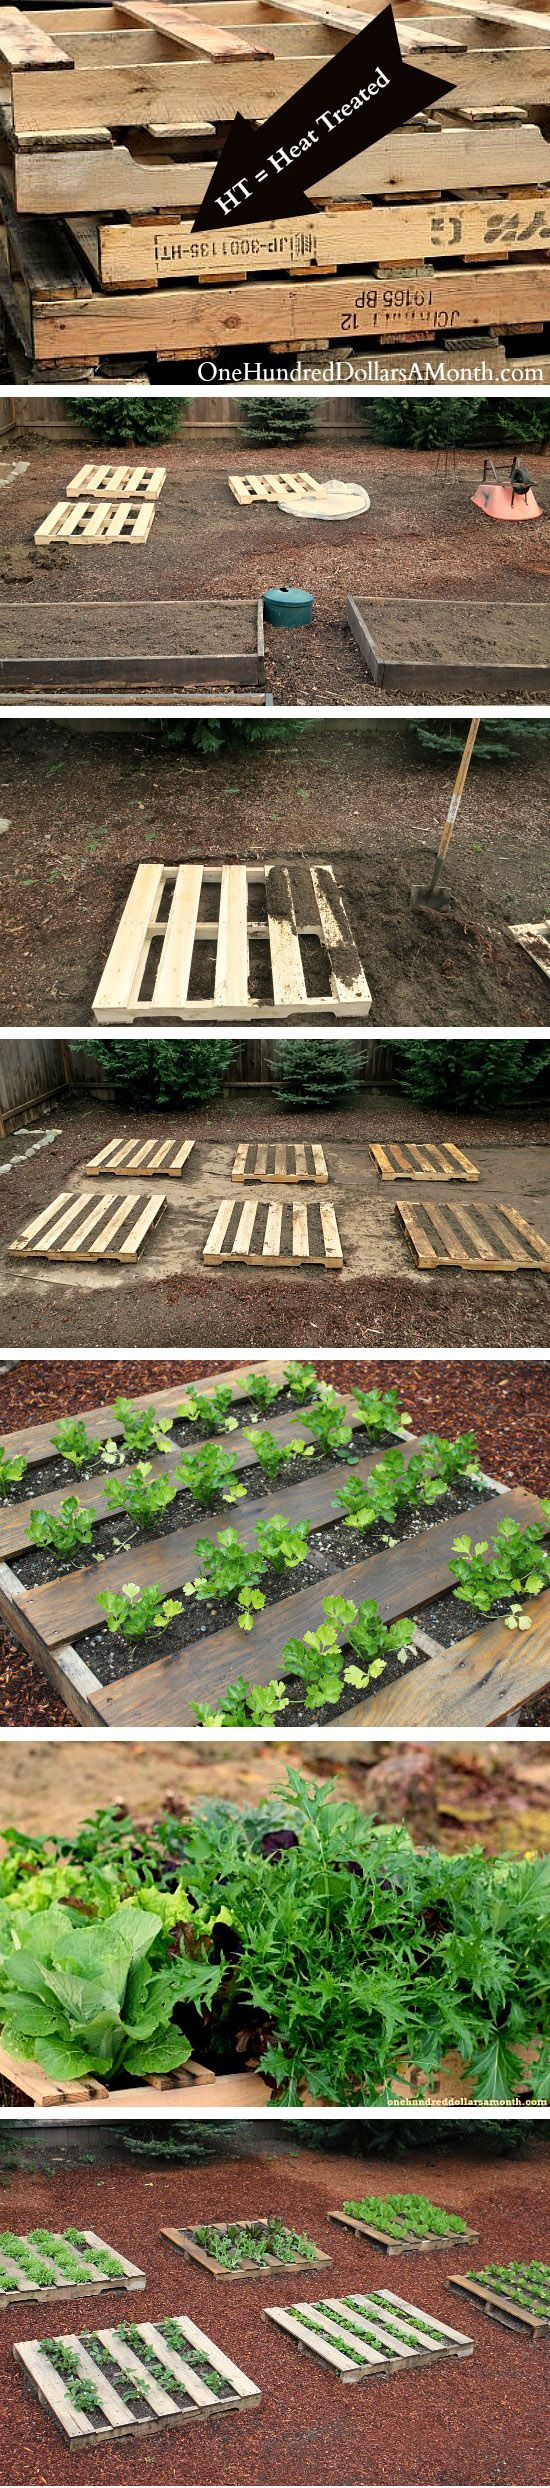 How to recicle wood pales in your garden // Cómo reutilizar palés para pequeños cultivos